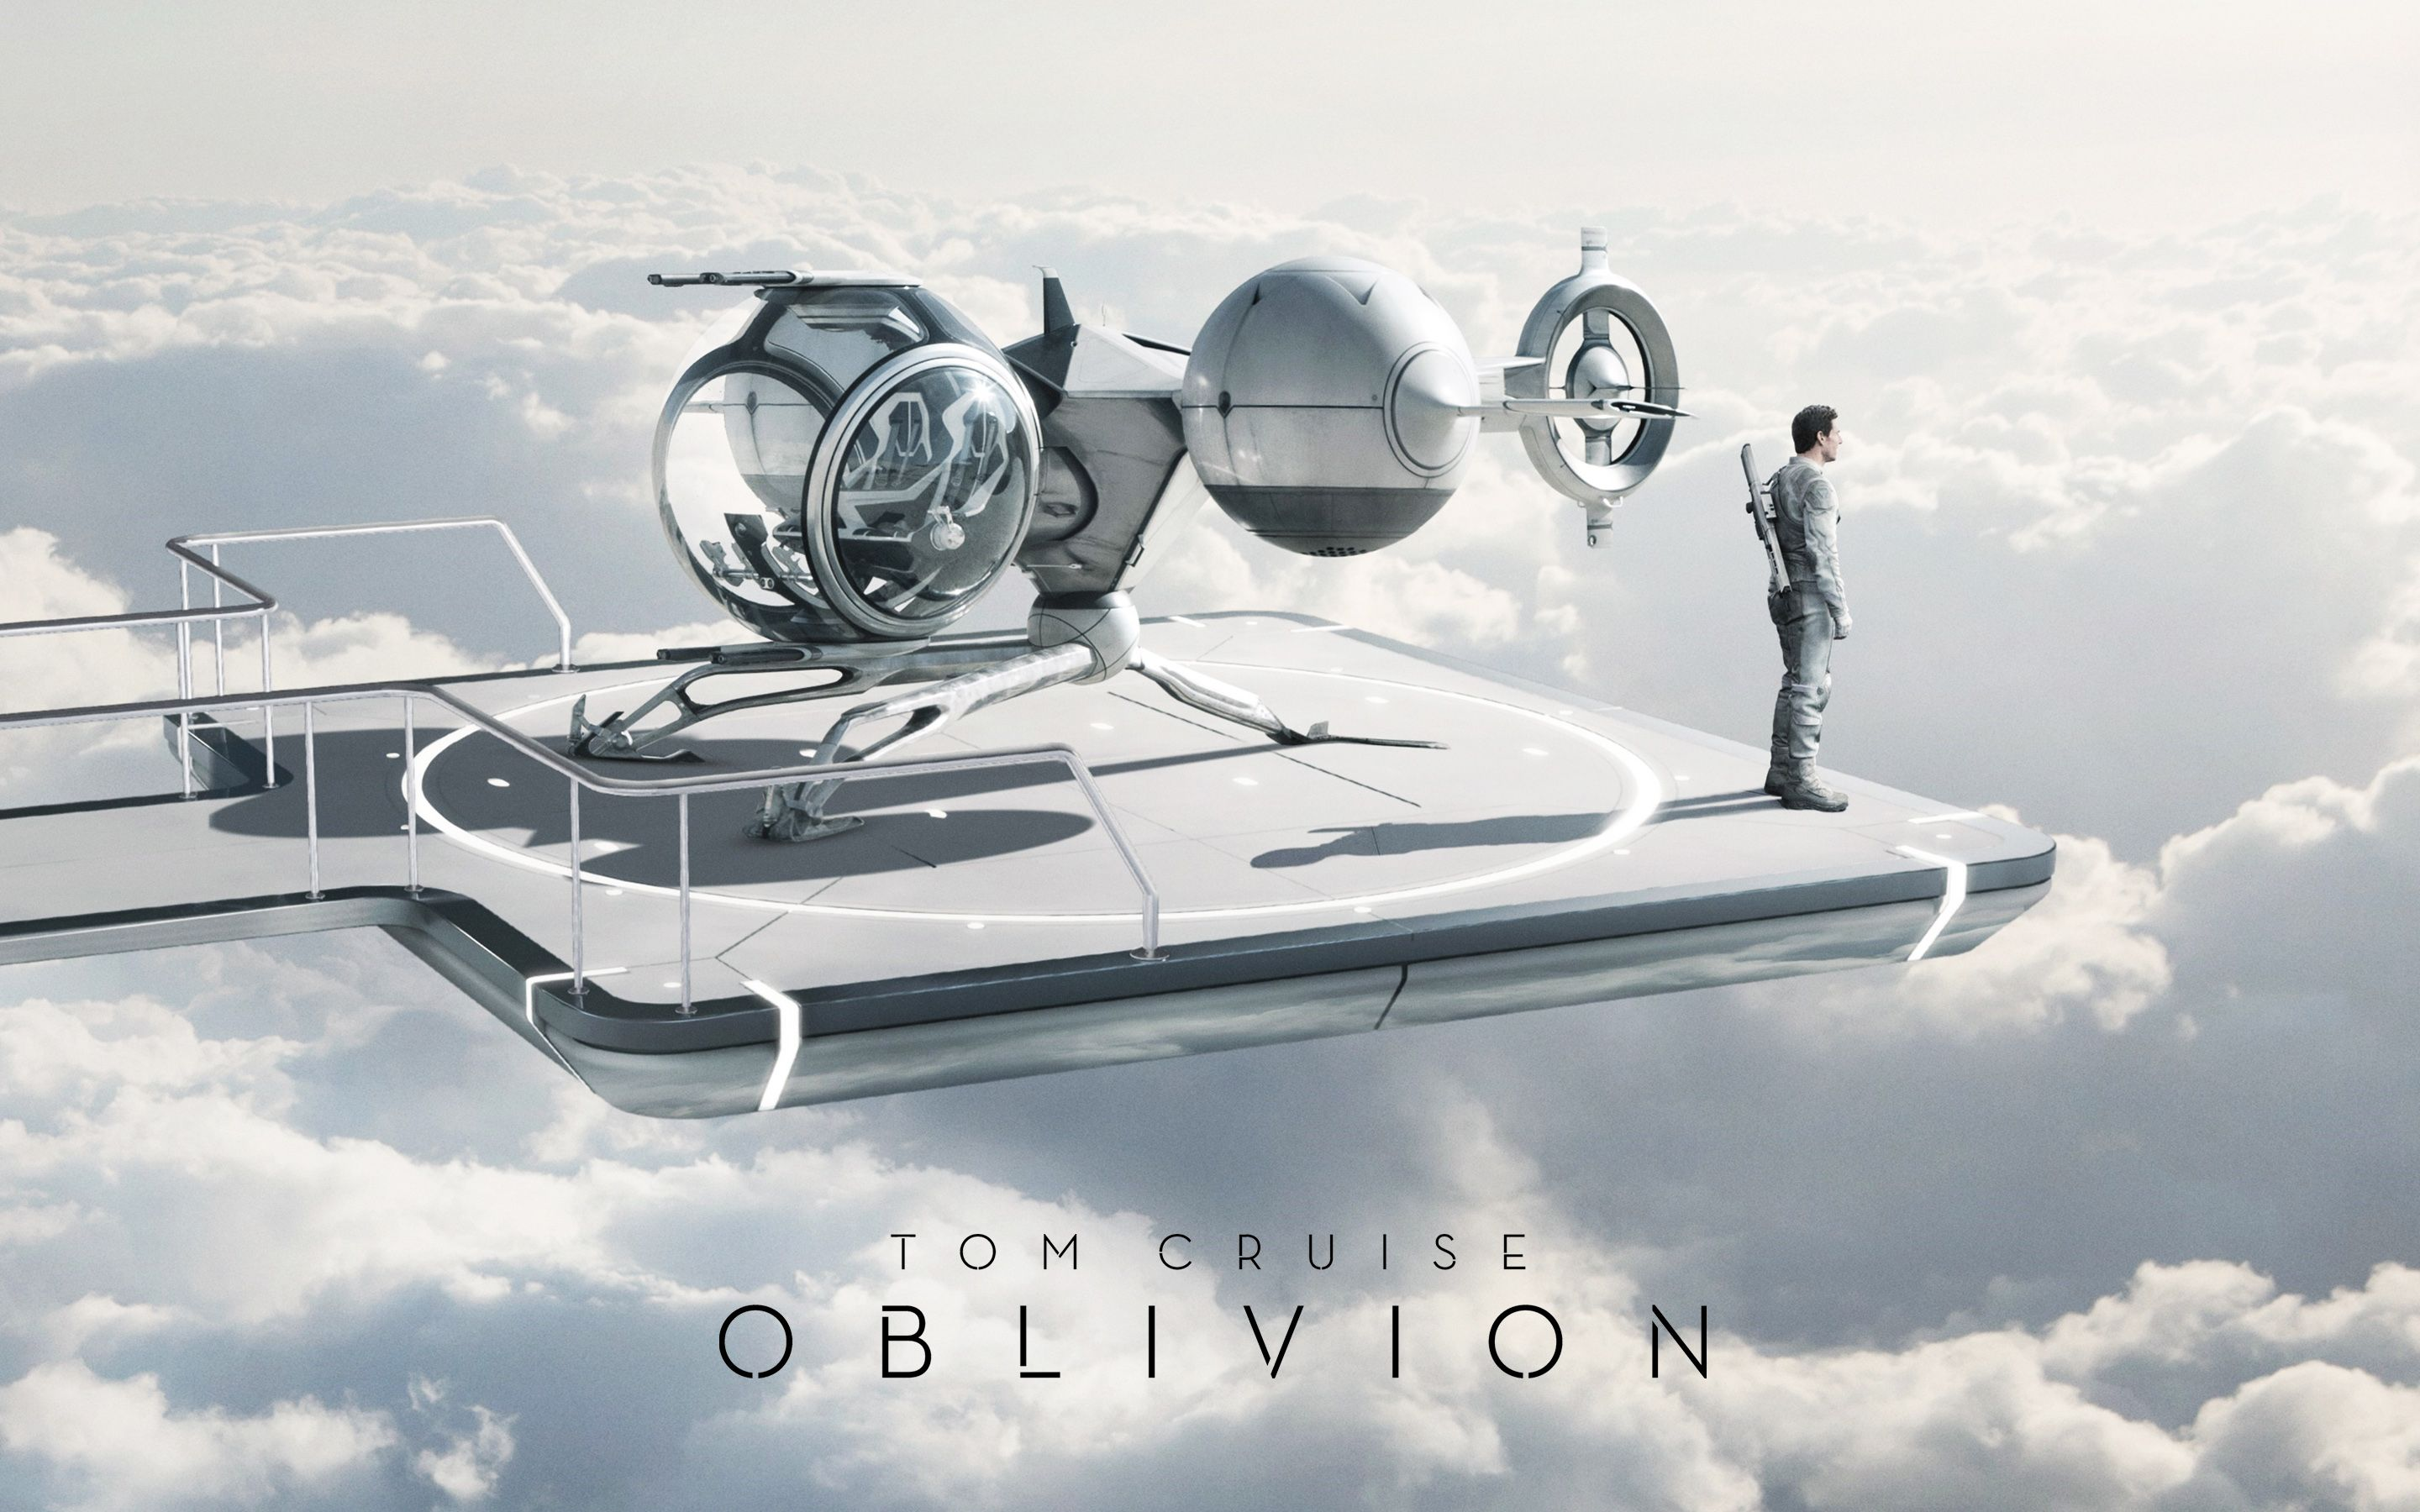 Tom Cruise Oblivion Movie Wallpapers HD Wallpapers Favorite 2880x1800